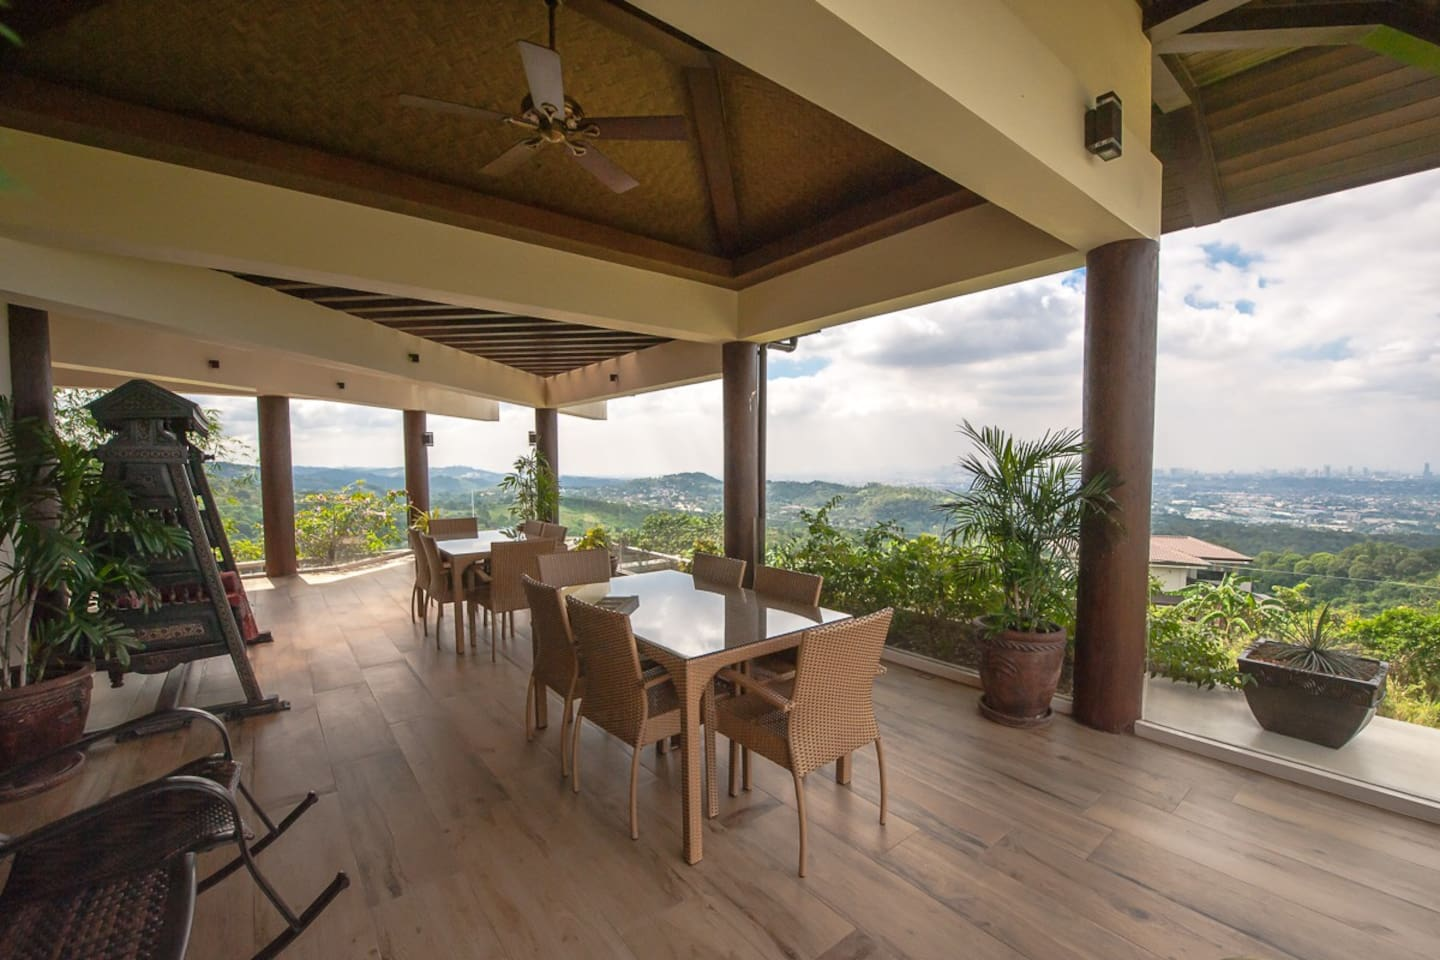 Rates include a hearty breakfast which is served on the front deck of the house.